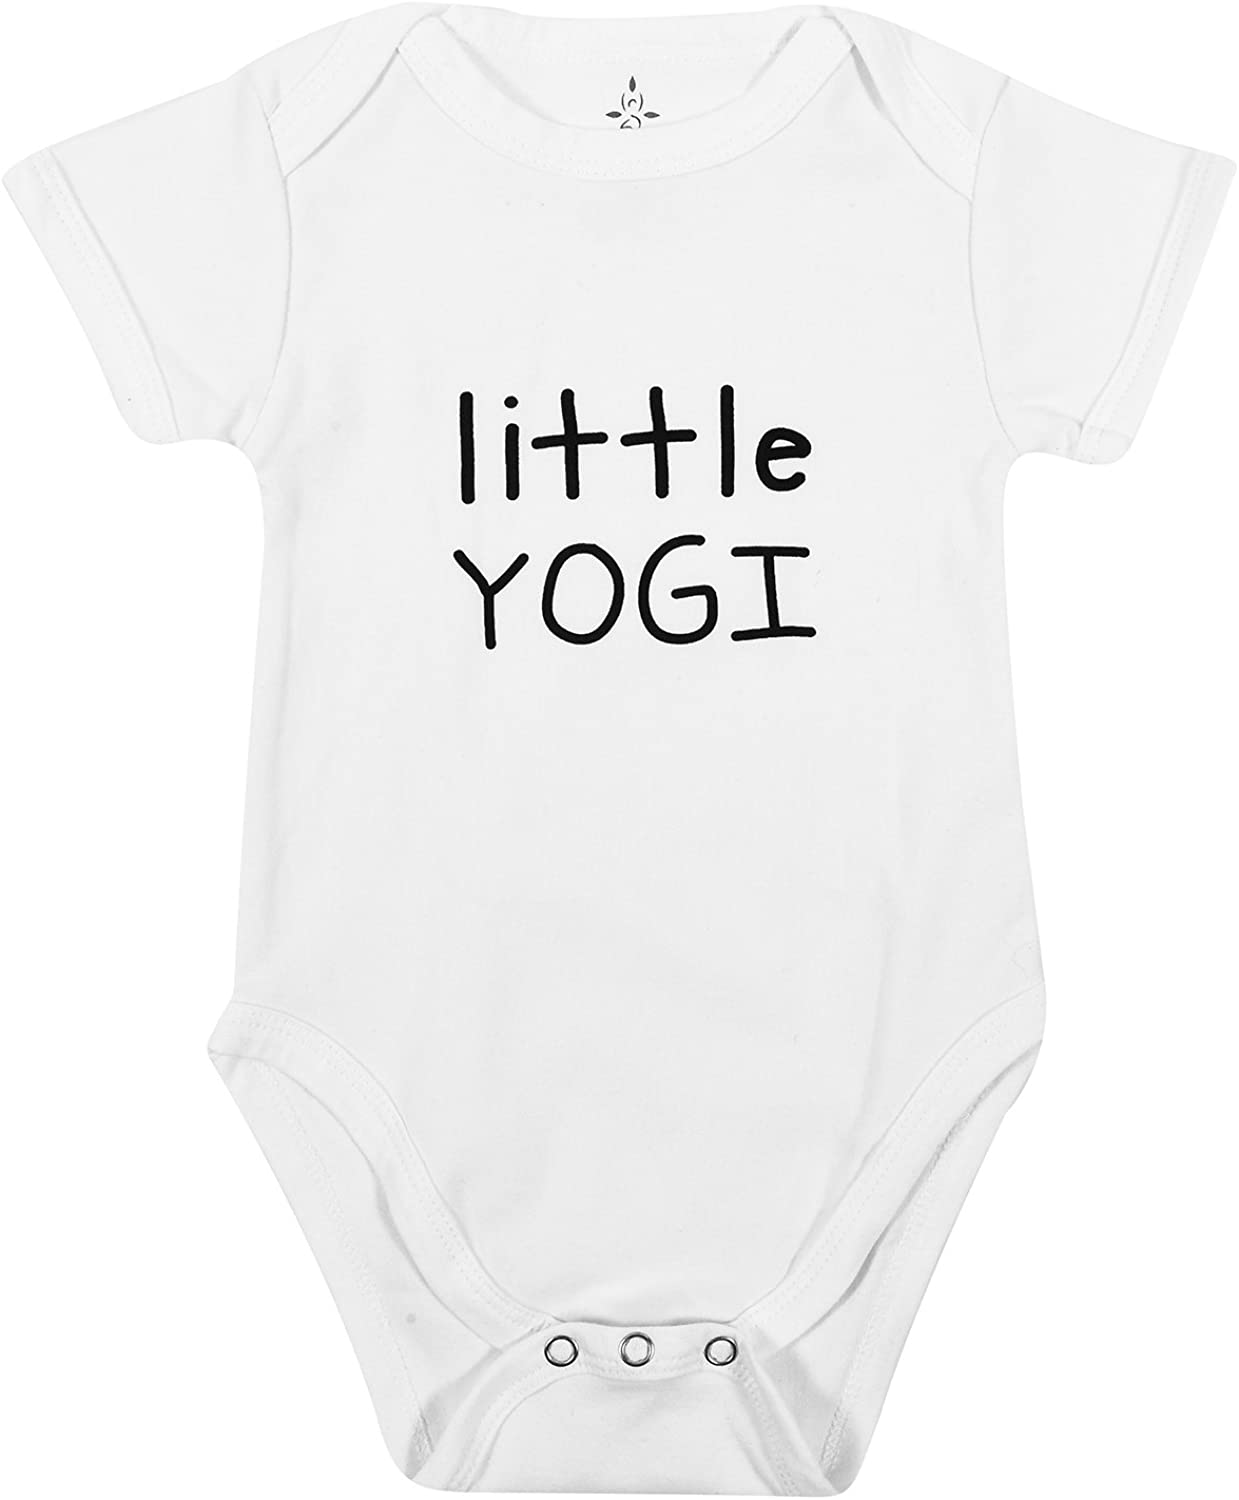 TREELANCE Yoga Baby Organic Cotton Girl Boy Clothes Little Yogi Onesie Onesies for Yoga Babies